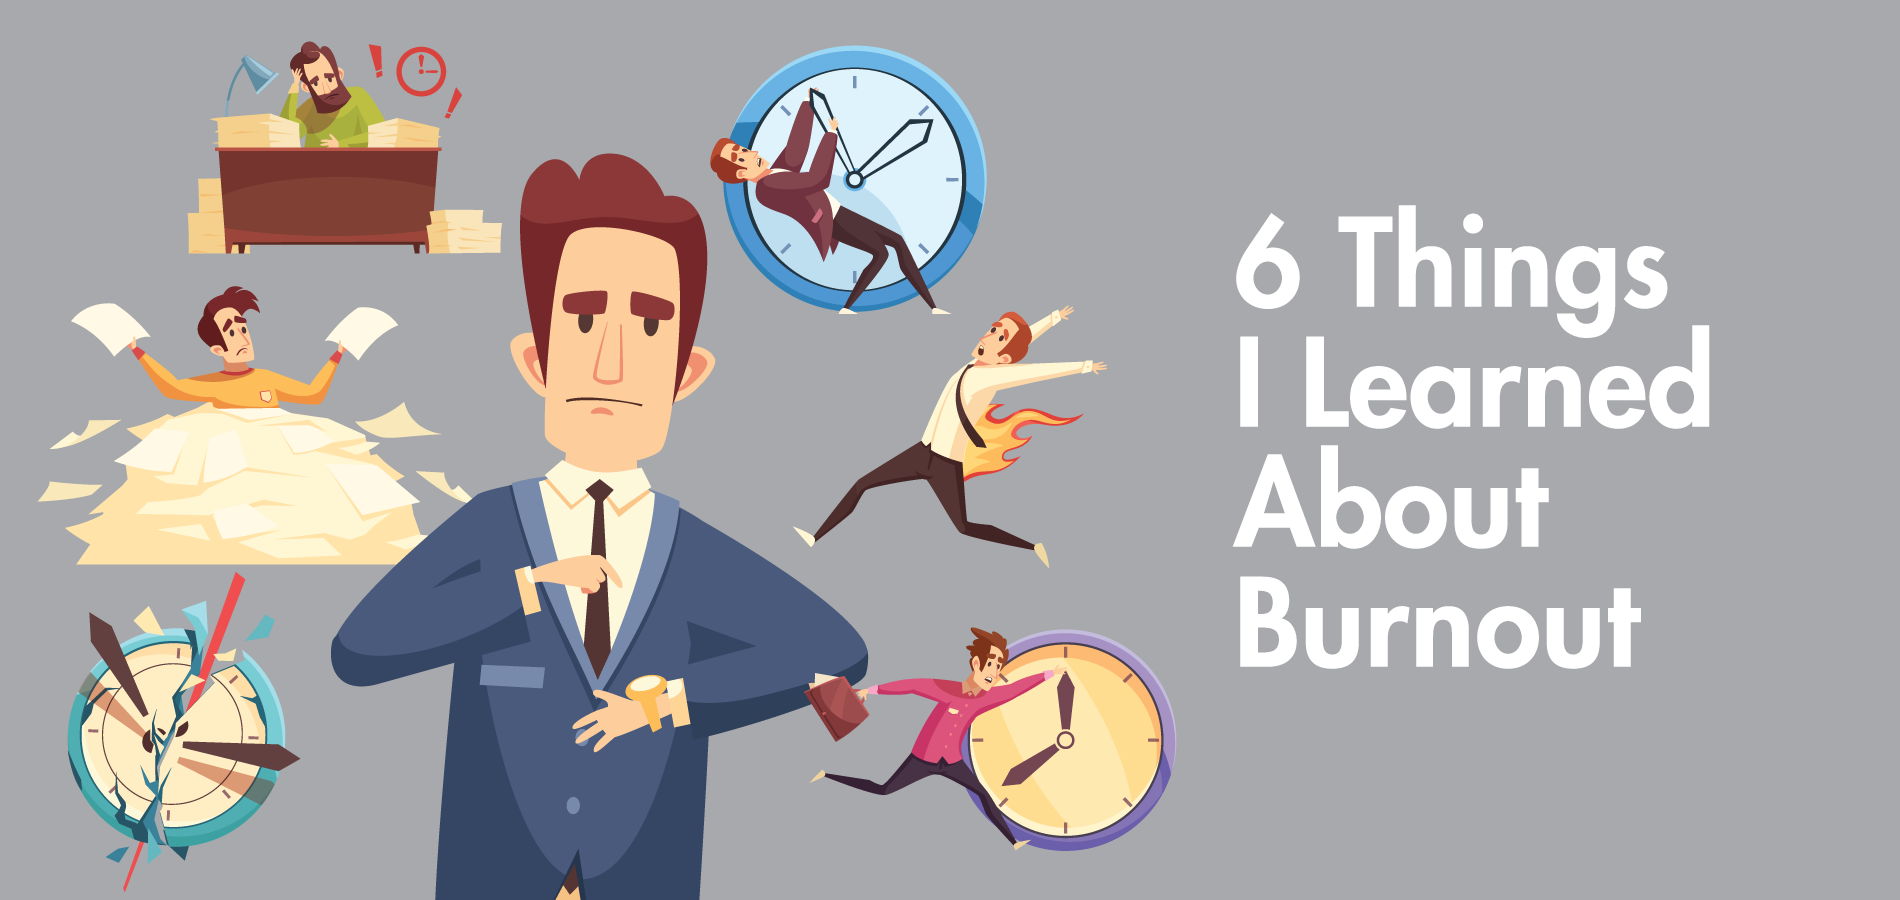 6 Things I Learned About Burnout